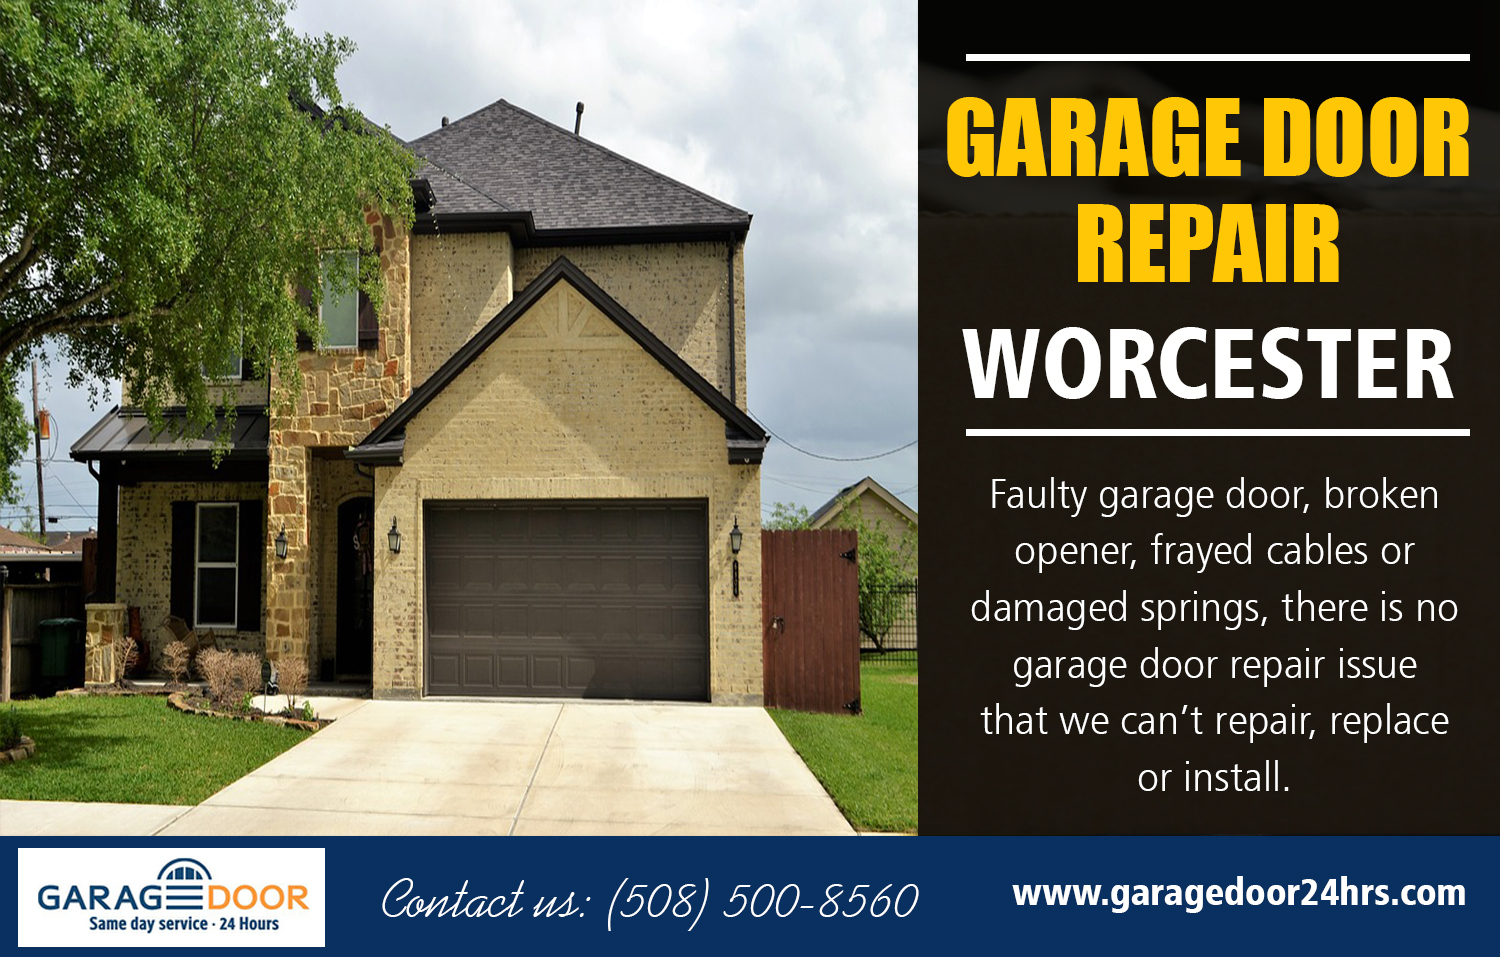 Garage Door Repair Services Near Worcester